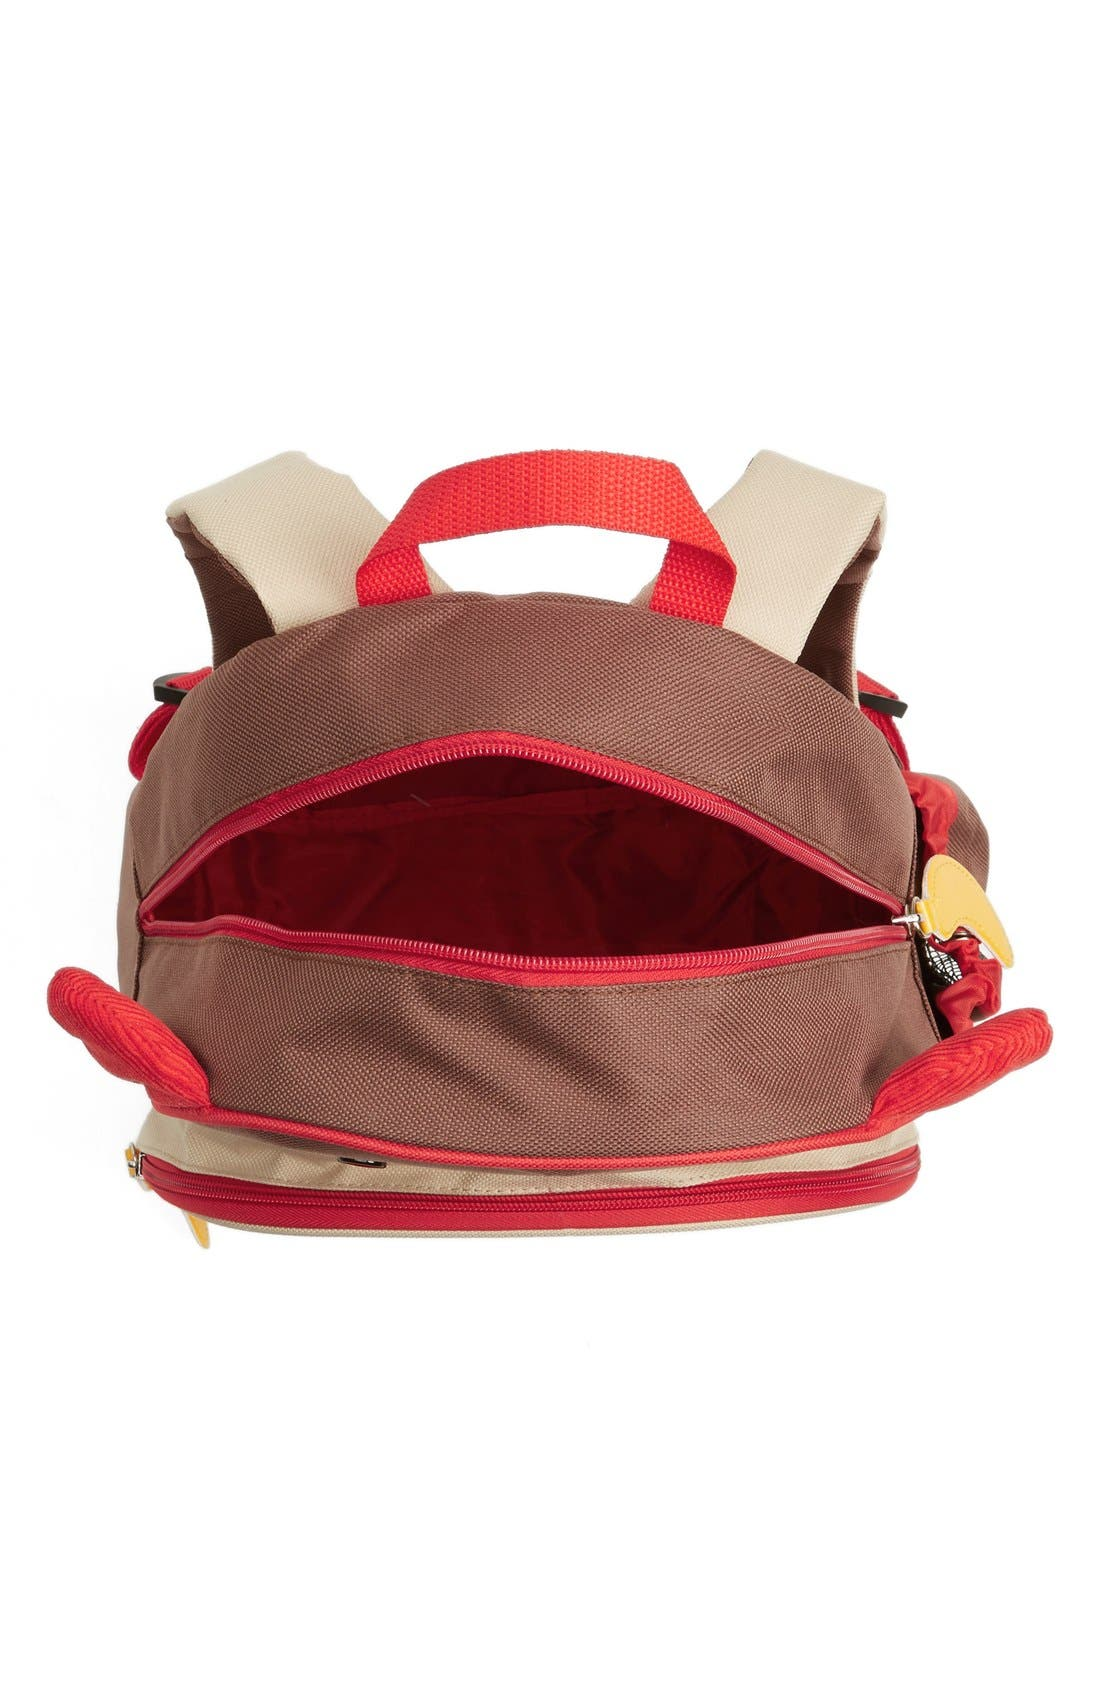 Zoo Pack Backpack,                             Alternate thumbnail 9, color,                             BROWN